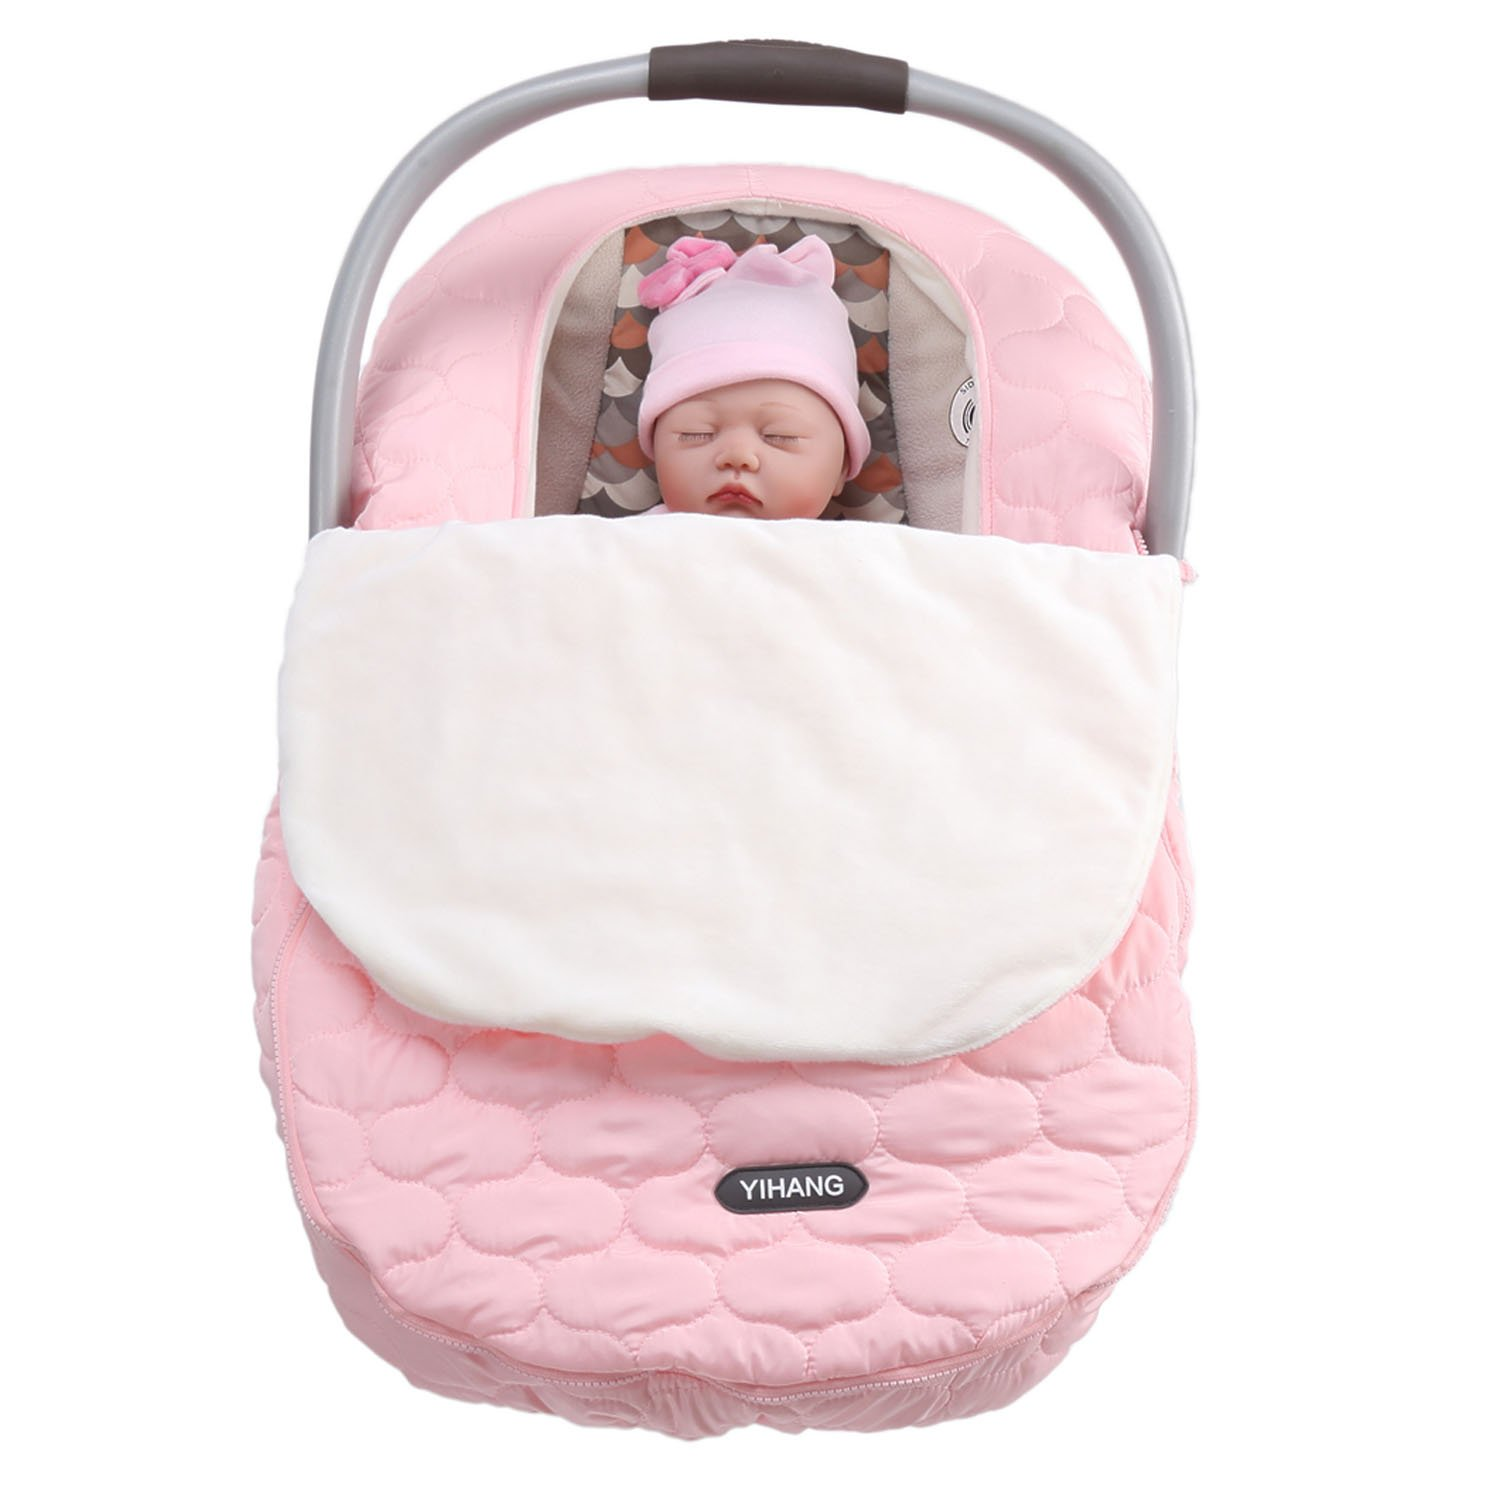 Awesome Yihang Baby Car Seat Covers For Girls And Boys Infant Car Seat Cover For Autumn And Winter Car Seat Machost Co Dining Chair Design Ideas Machostcouk